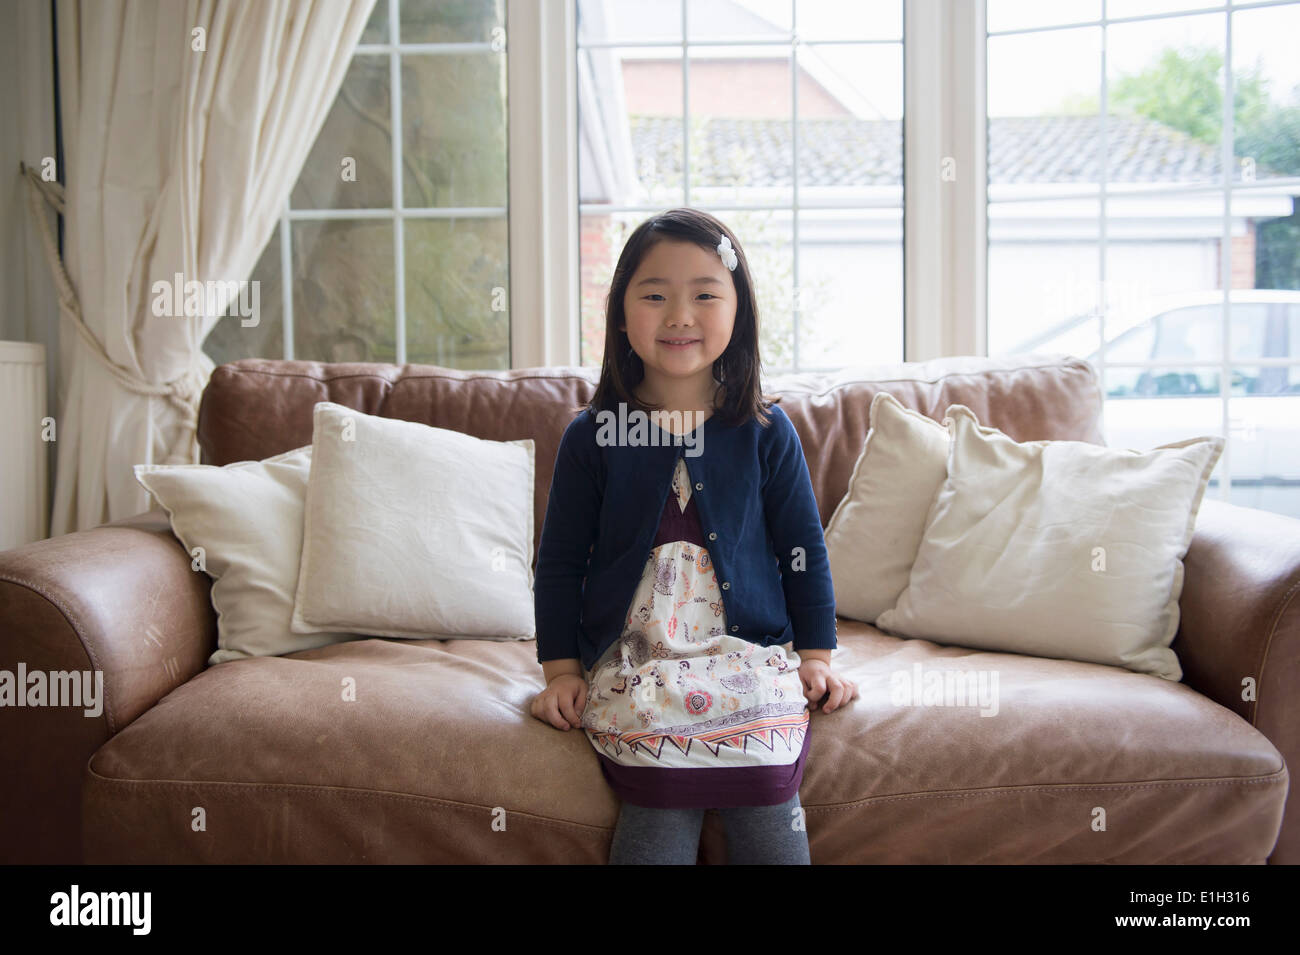 Portrait of young girl sitting on sofa - Stock Image